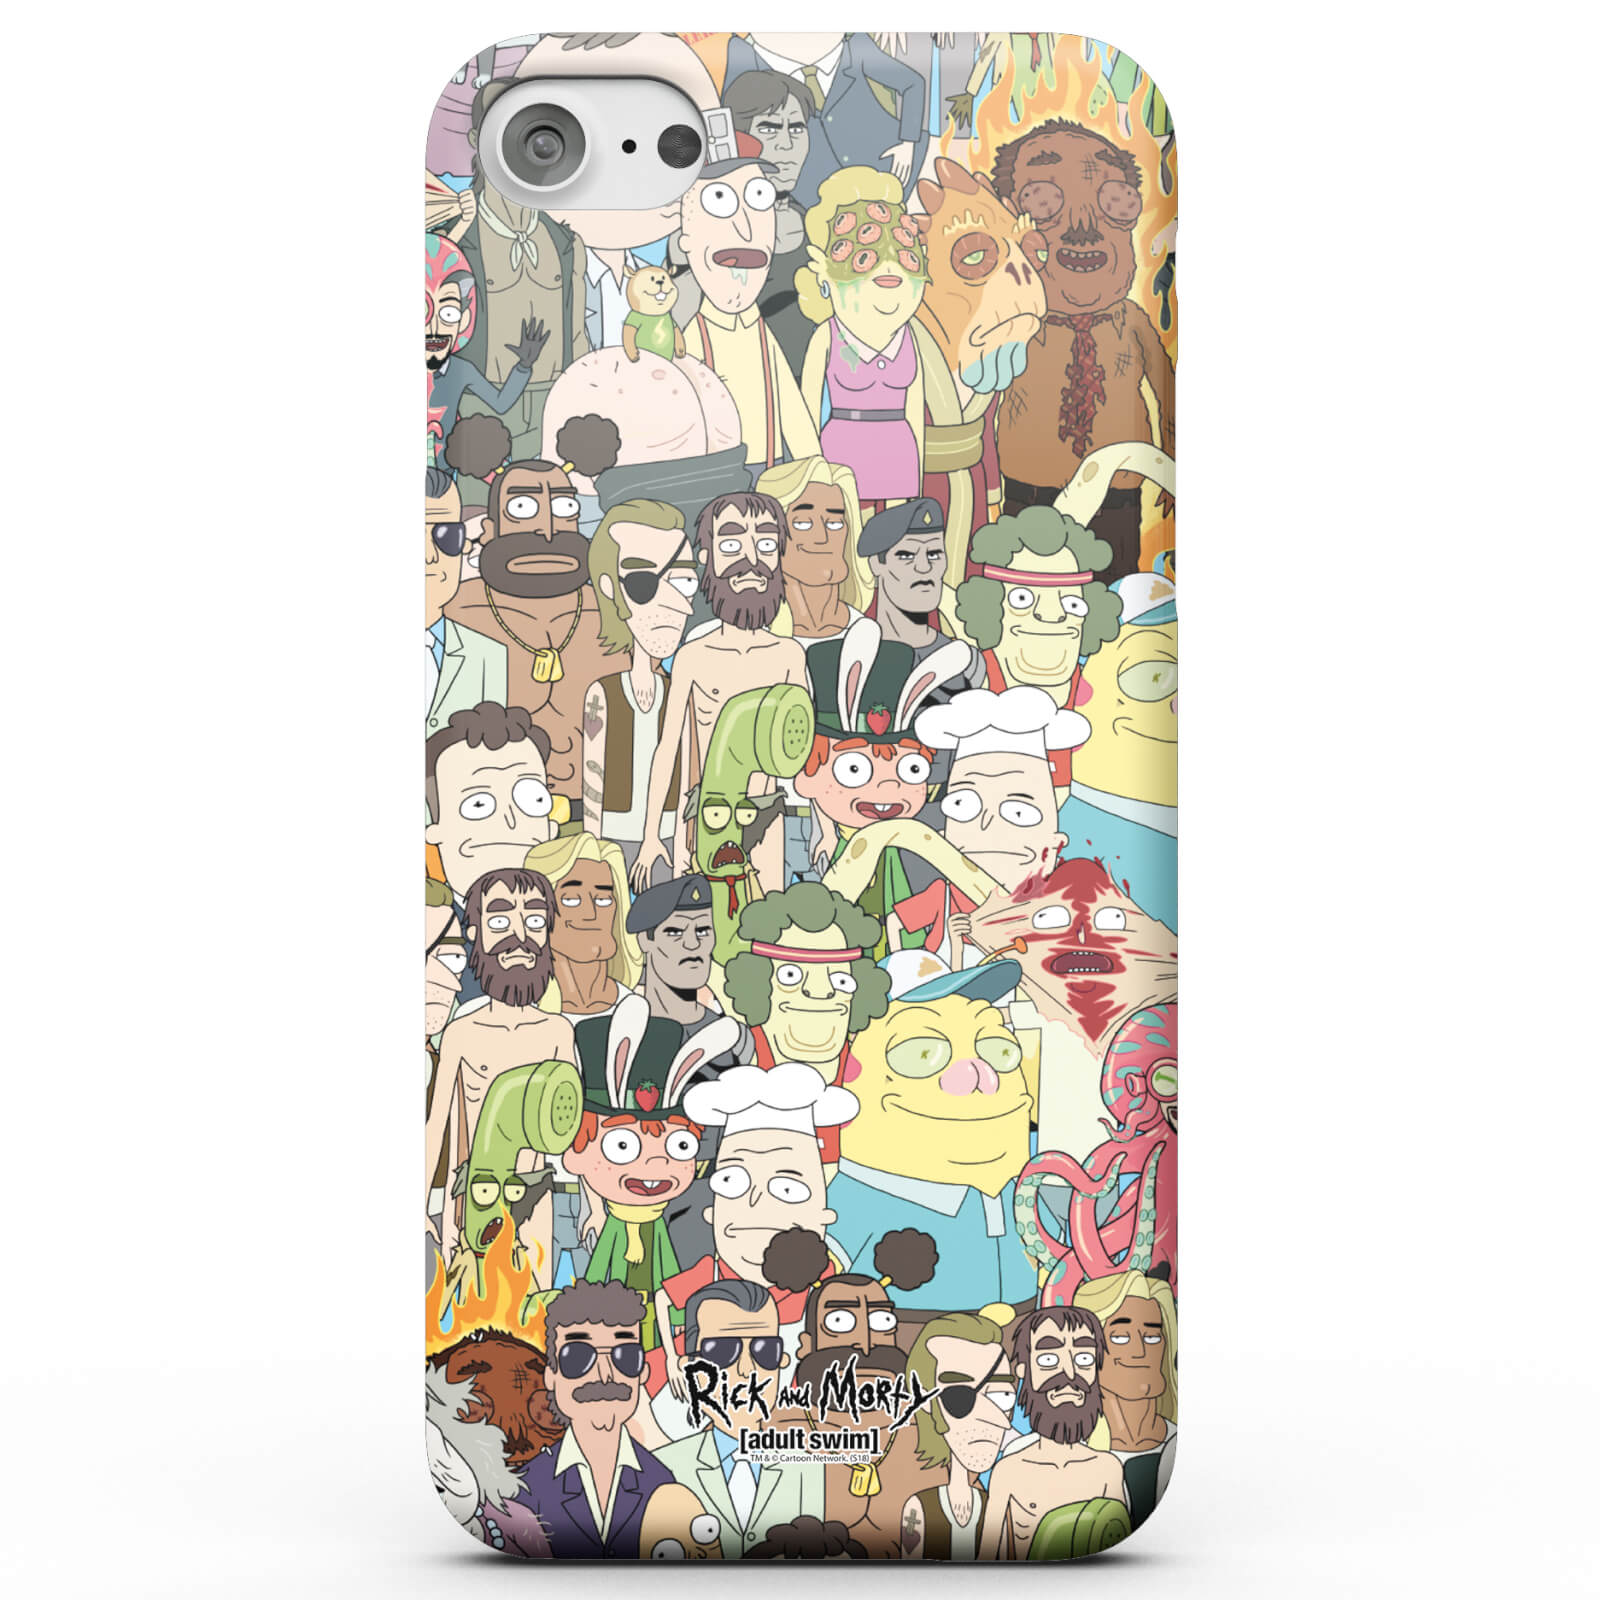 Funda Móvil Rick y Morty Interdimentional TV Characters para iPhone y Android - iPhone 7 Plus - Carcasa rígida - Mate de Rick and Morty